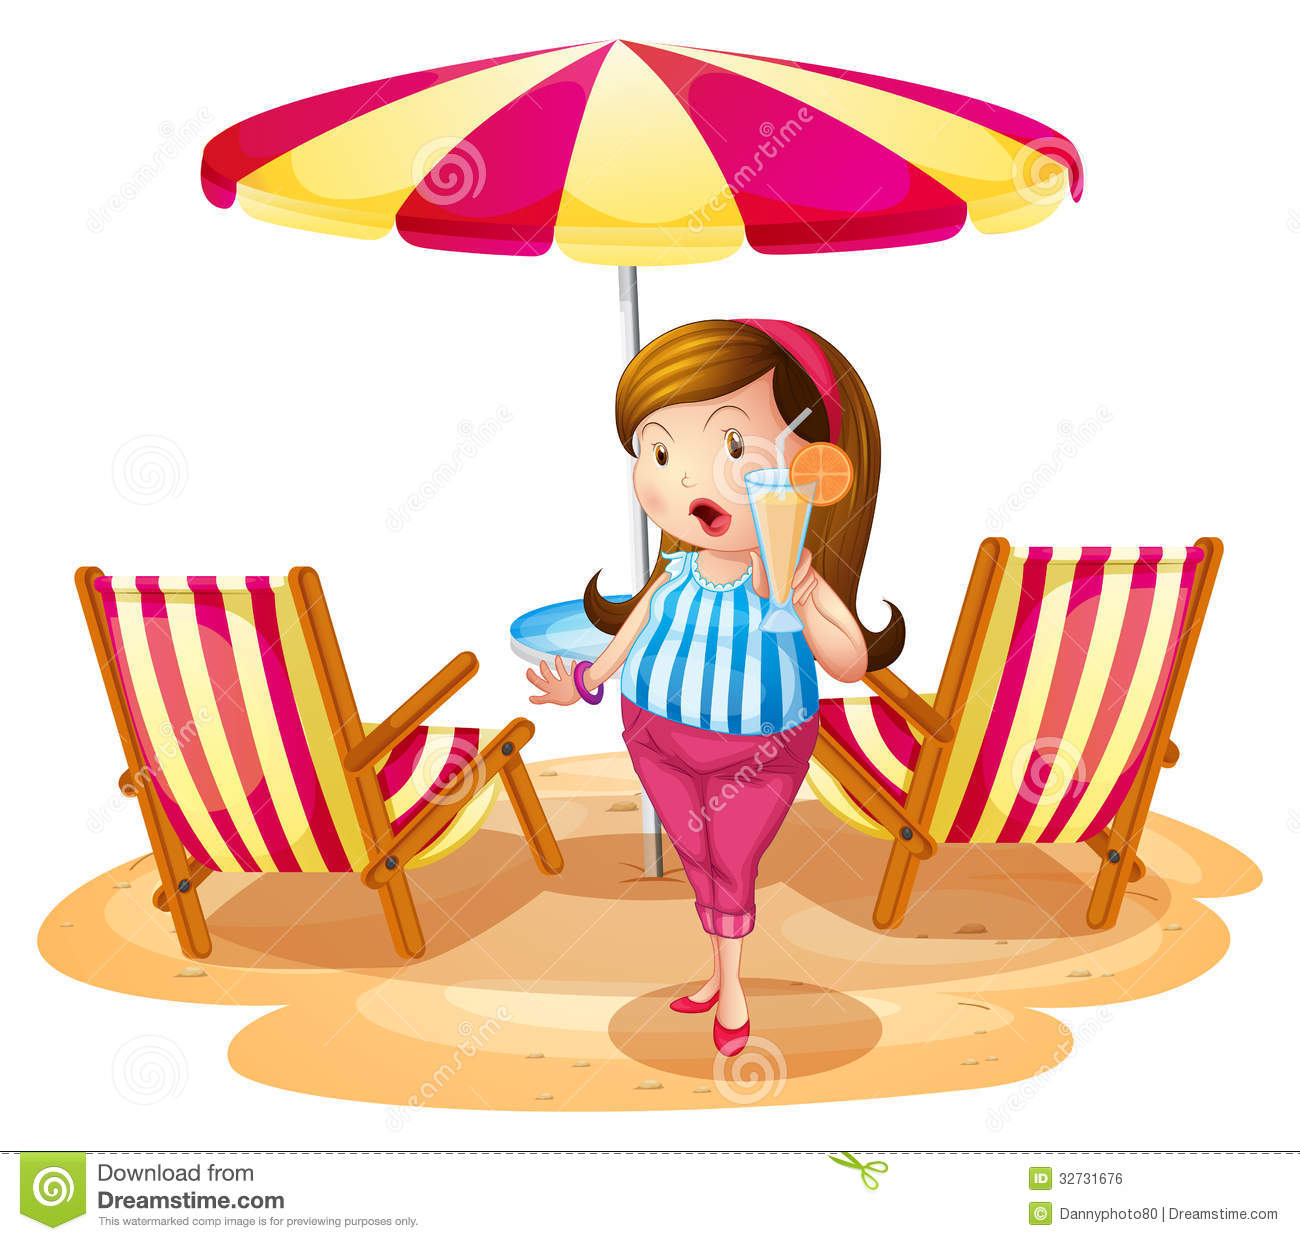 Beach umbrella and chair - A Fat Girl Holding A Juice Near The Beach Umbrella With Chairs